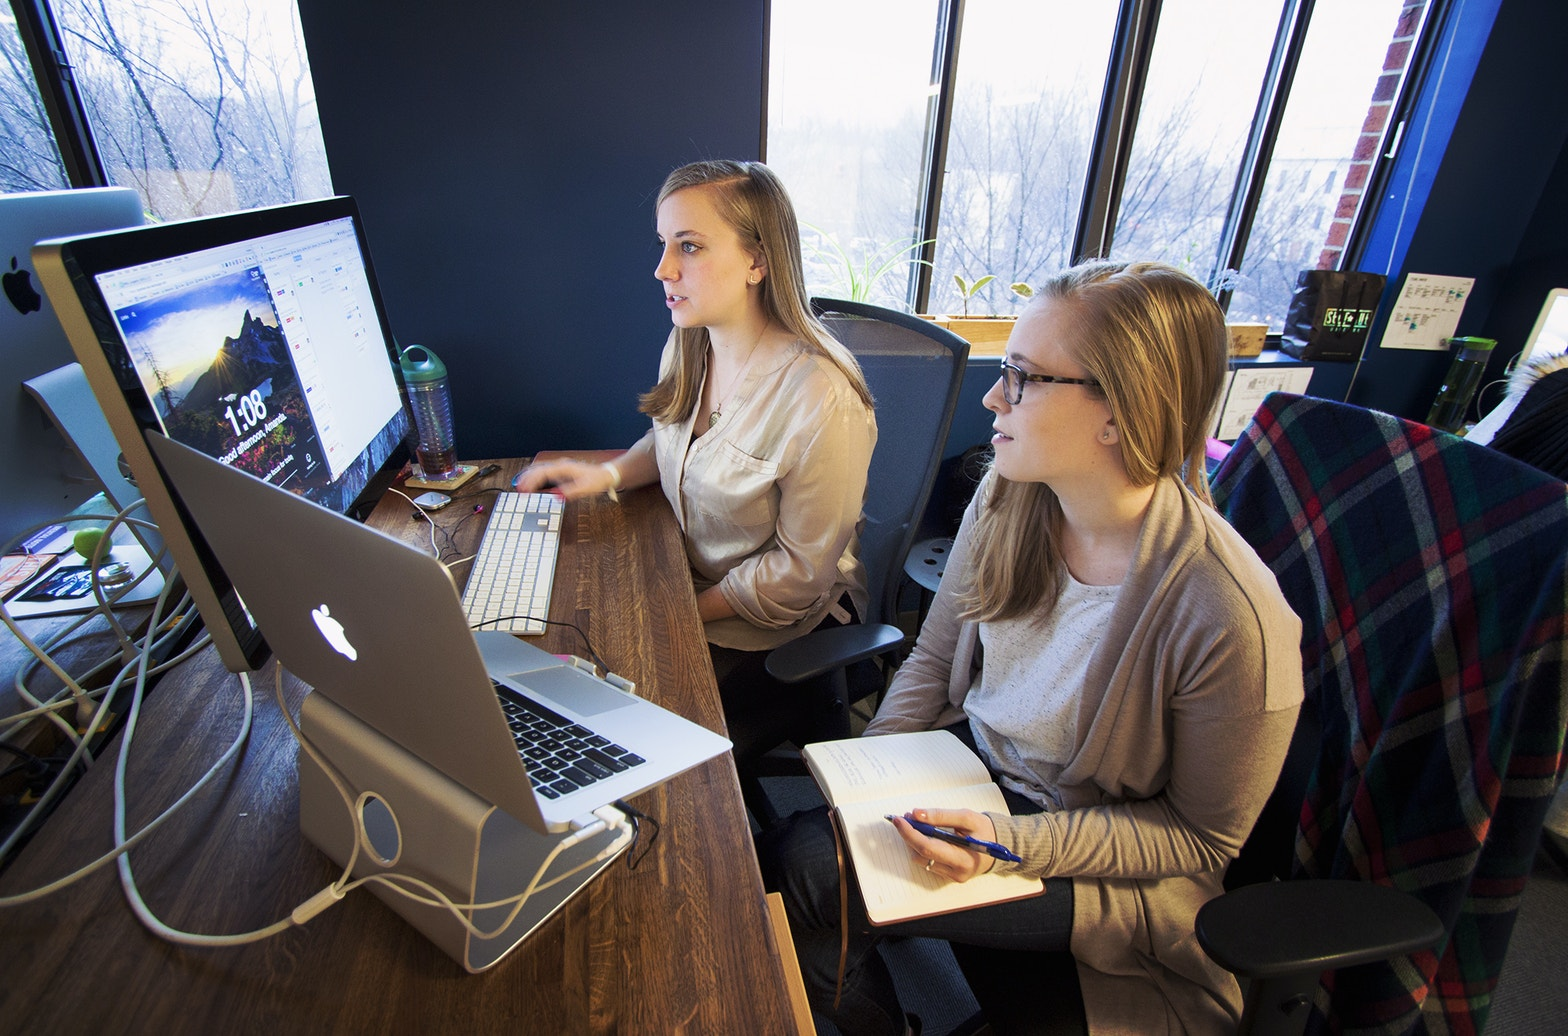 Amanda and Becca are PMs at Viget. They're sitting at a table reviewing project tasks.